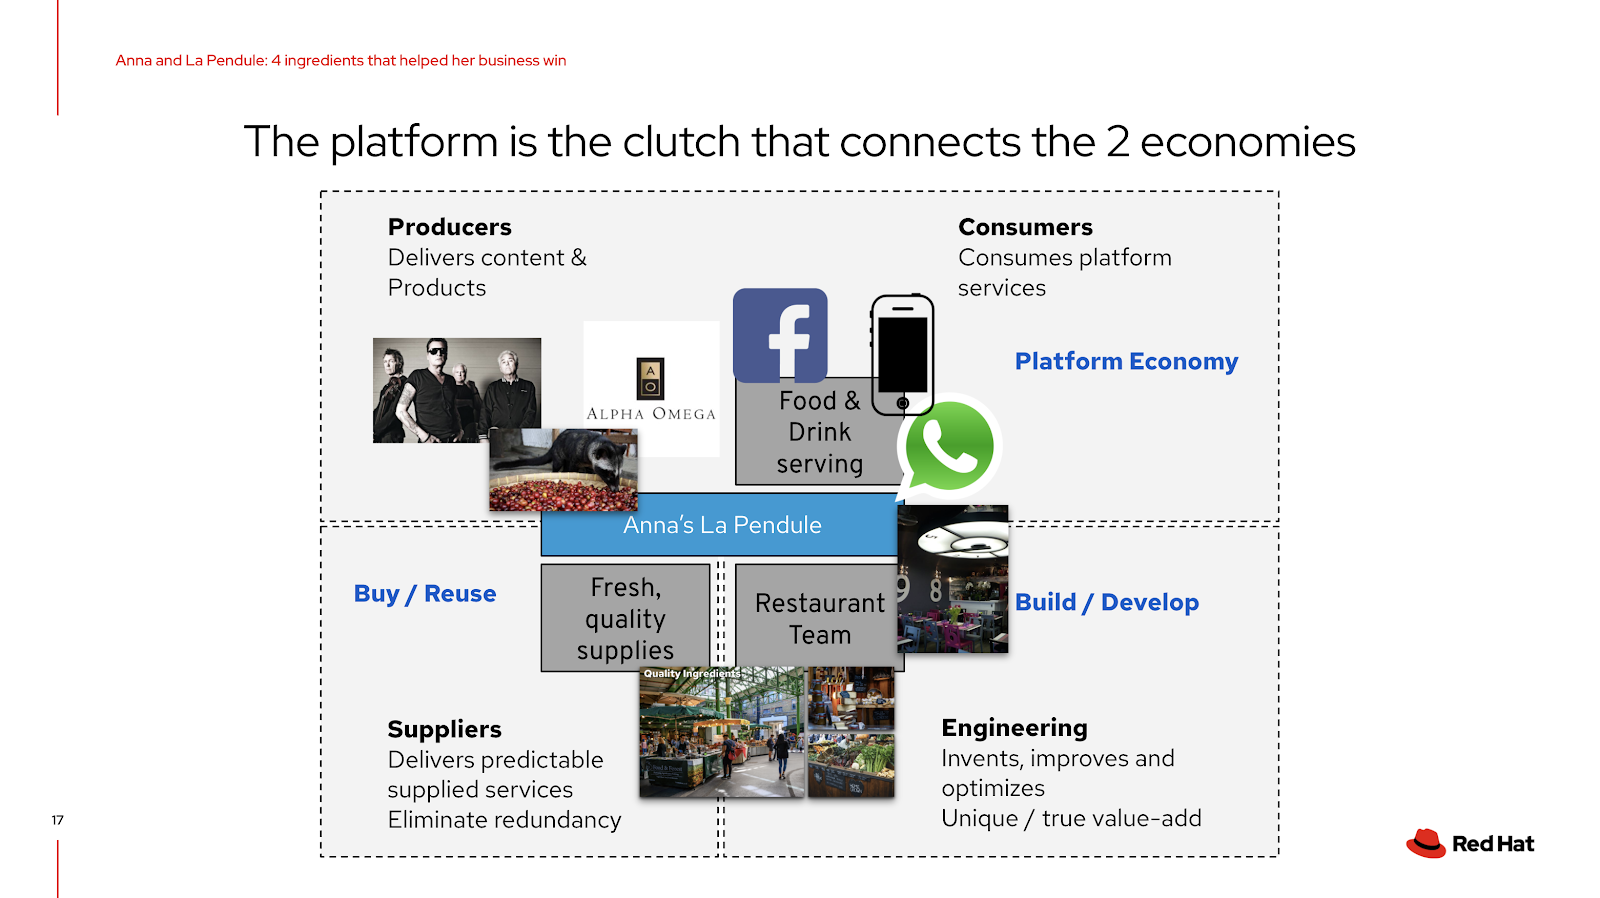 The platform is the clutch that connects the 2 economies